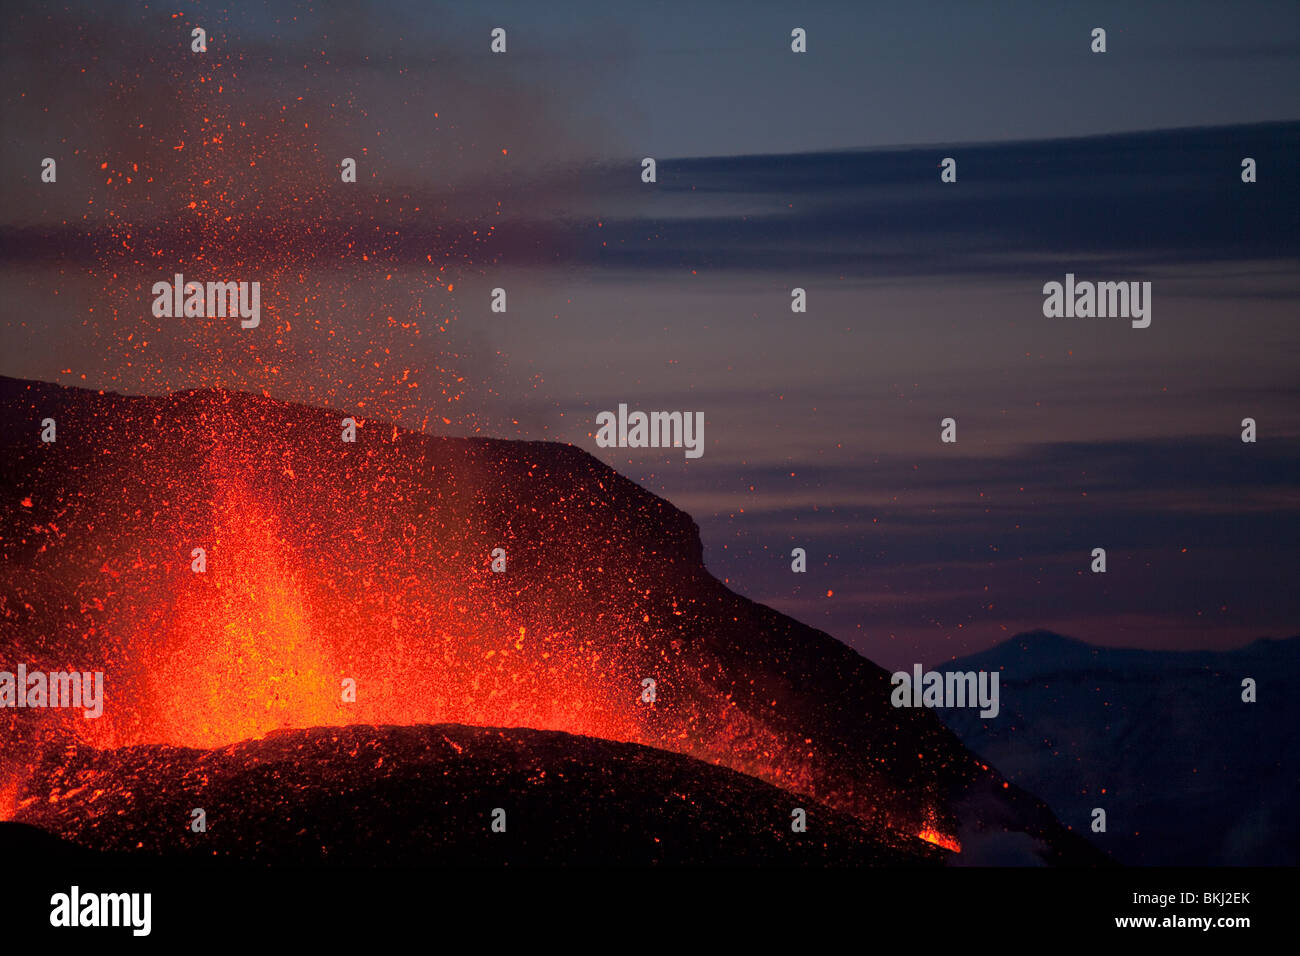 Lava fountains during start of Iceland Eyjafjallajökull volcanic eruption at dusk March 2010 - Stock Image